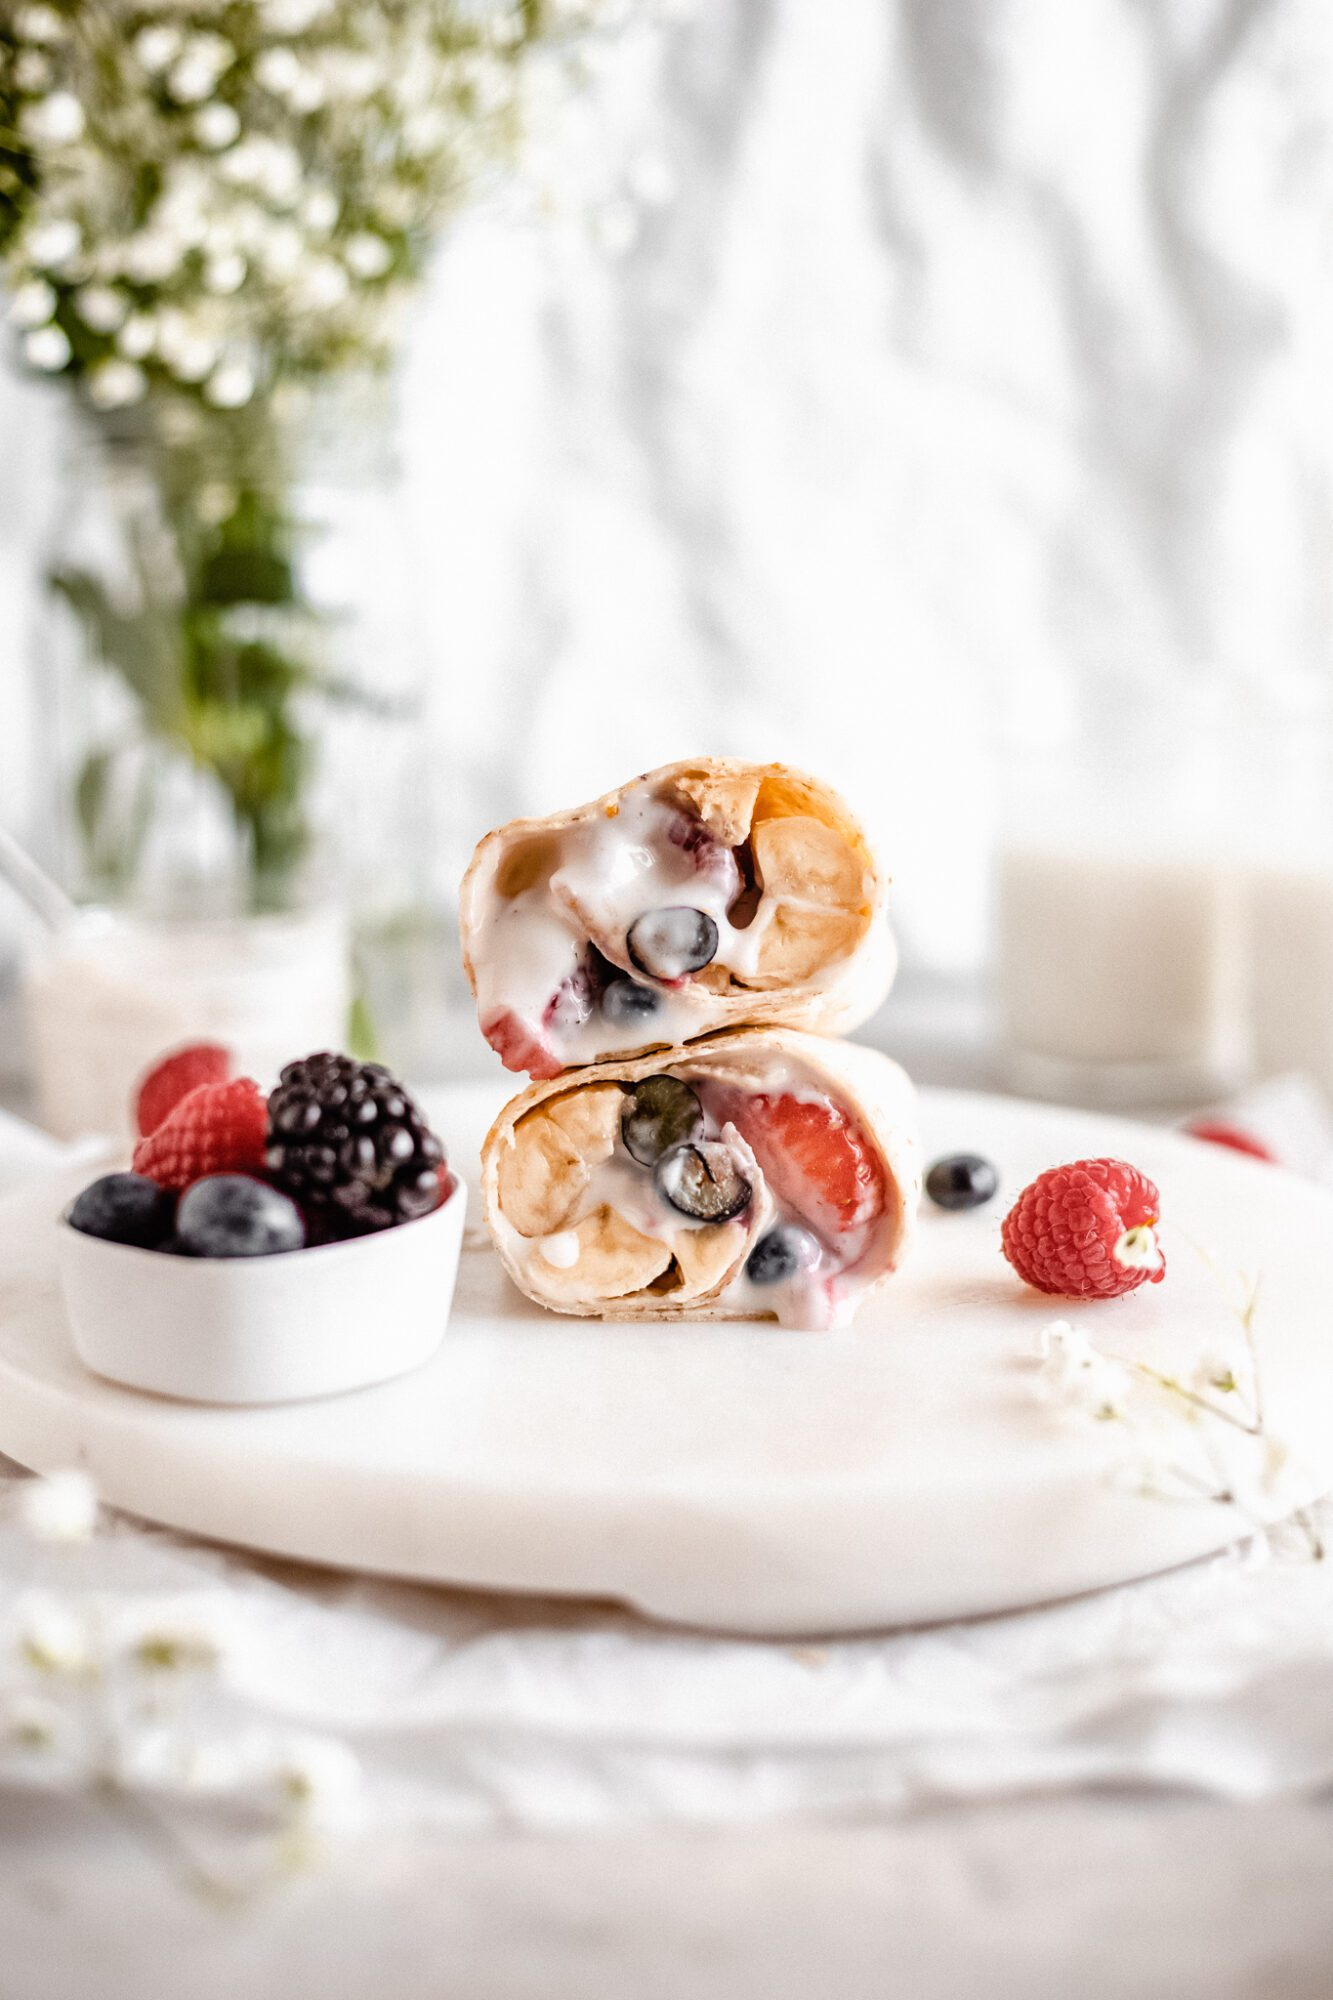 yogurt and berry breakfast burrito